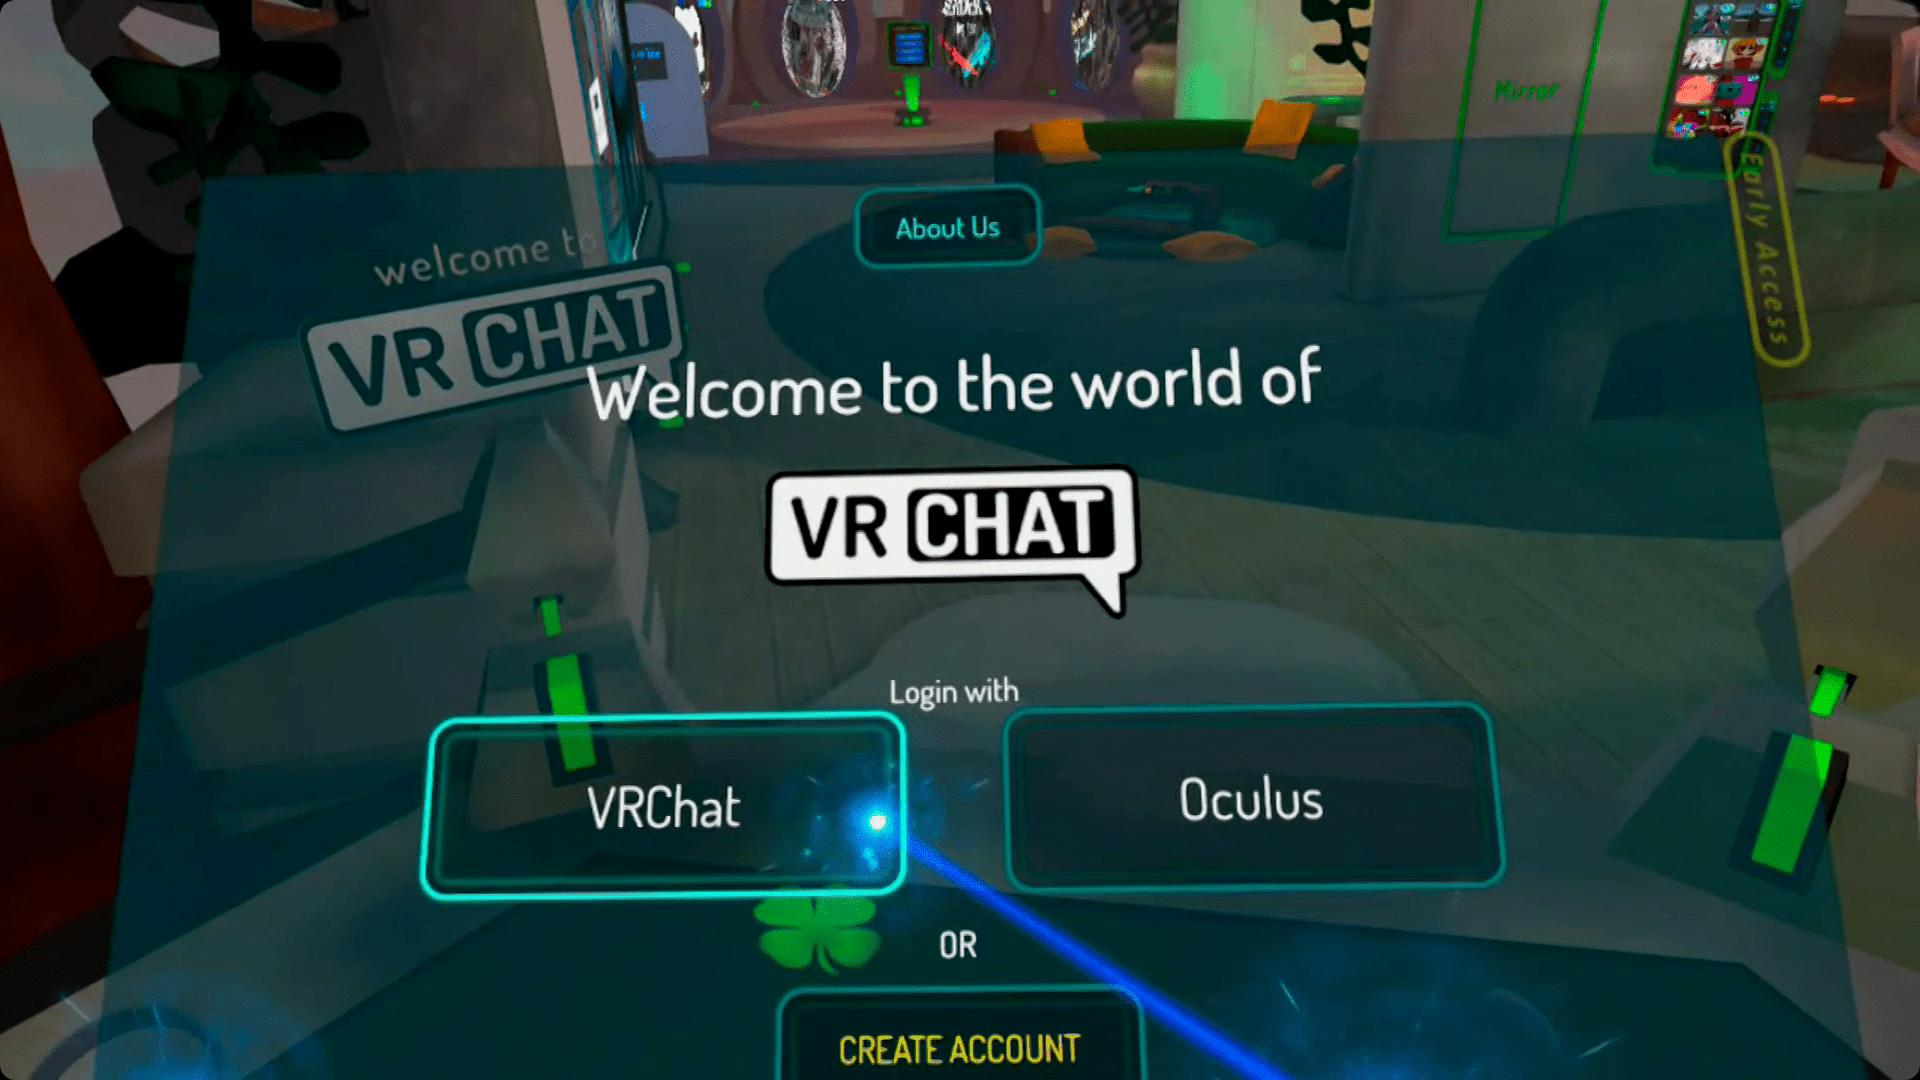 Logging into VRChat on Quest.